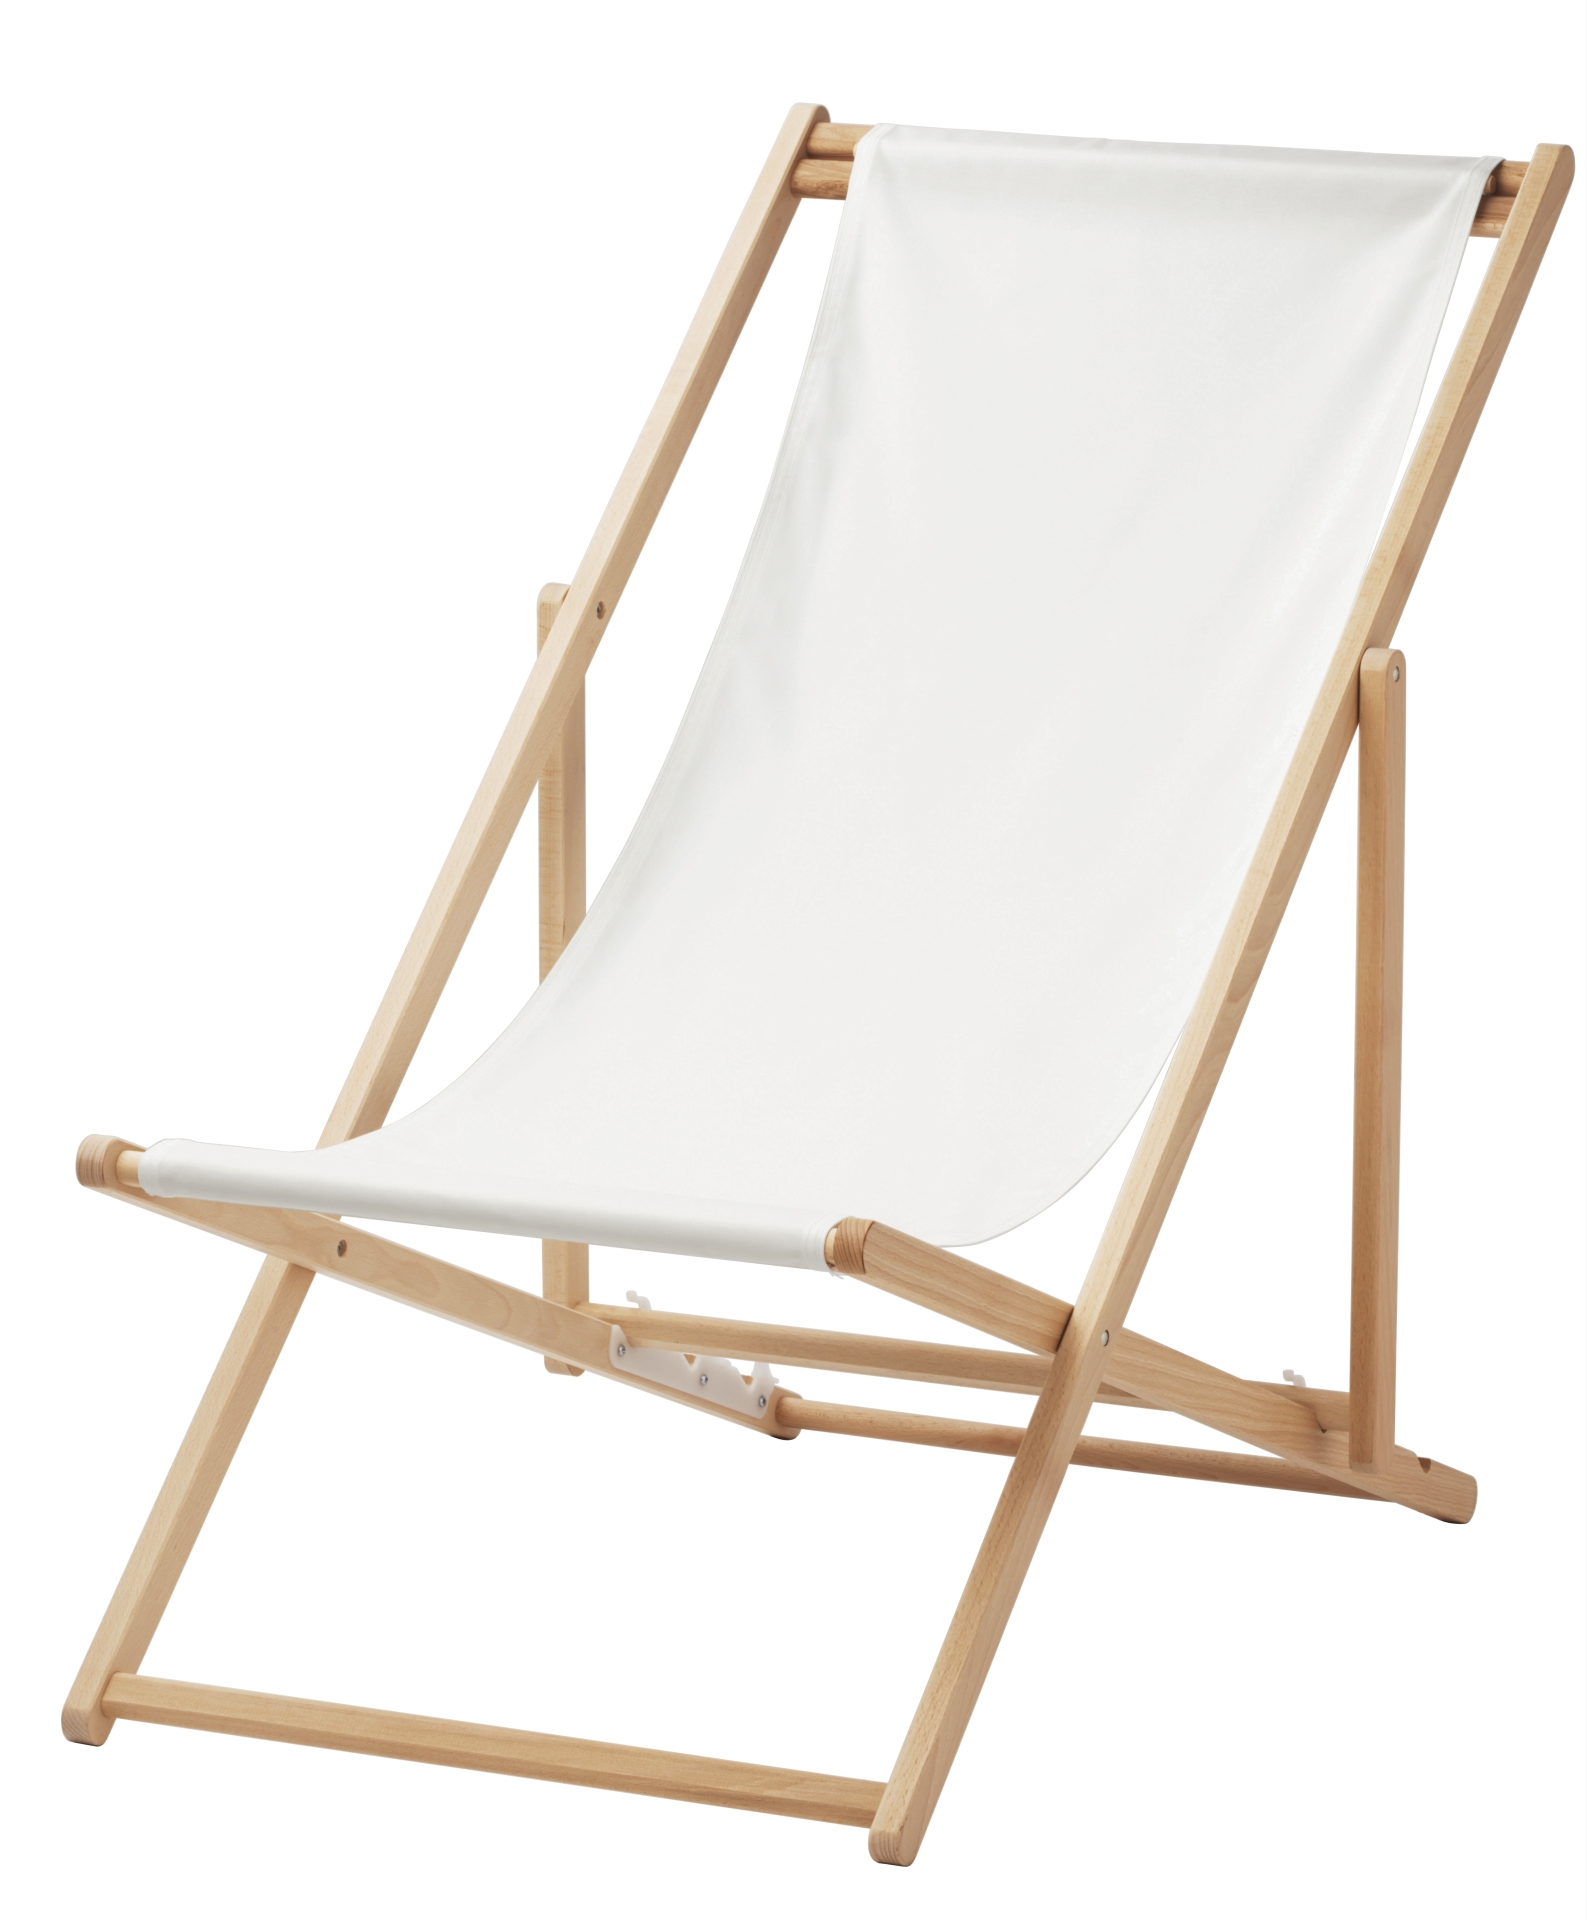 Beach chair with article number 502.851.66